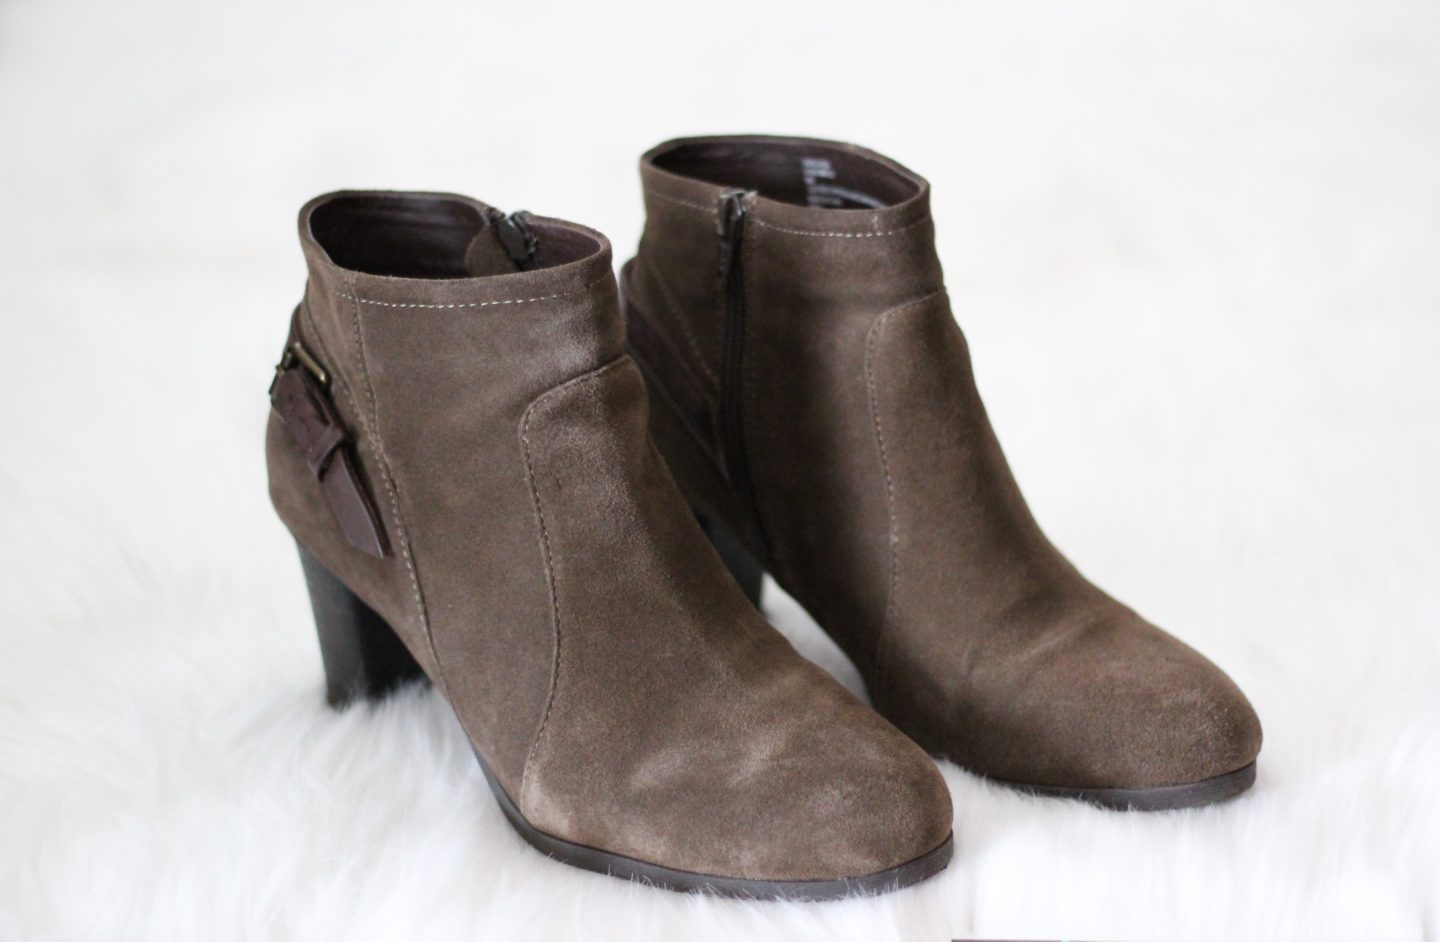 Bass Ankle Boots - Chelsea de Castro - Fall and Winter Booties